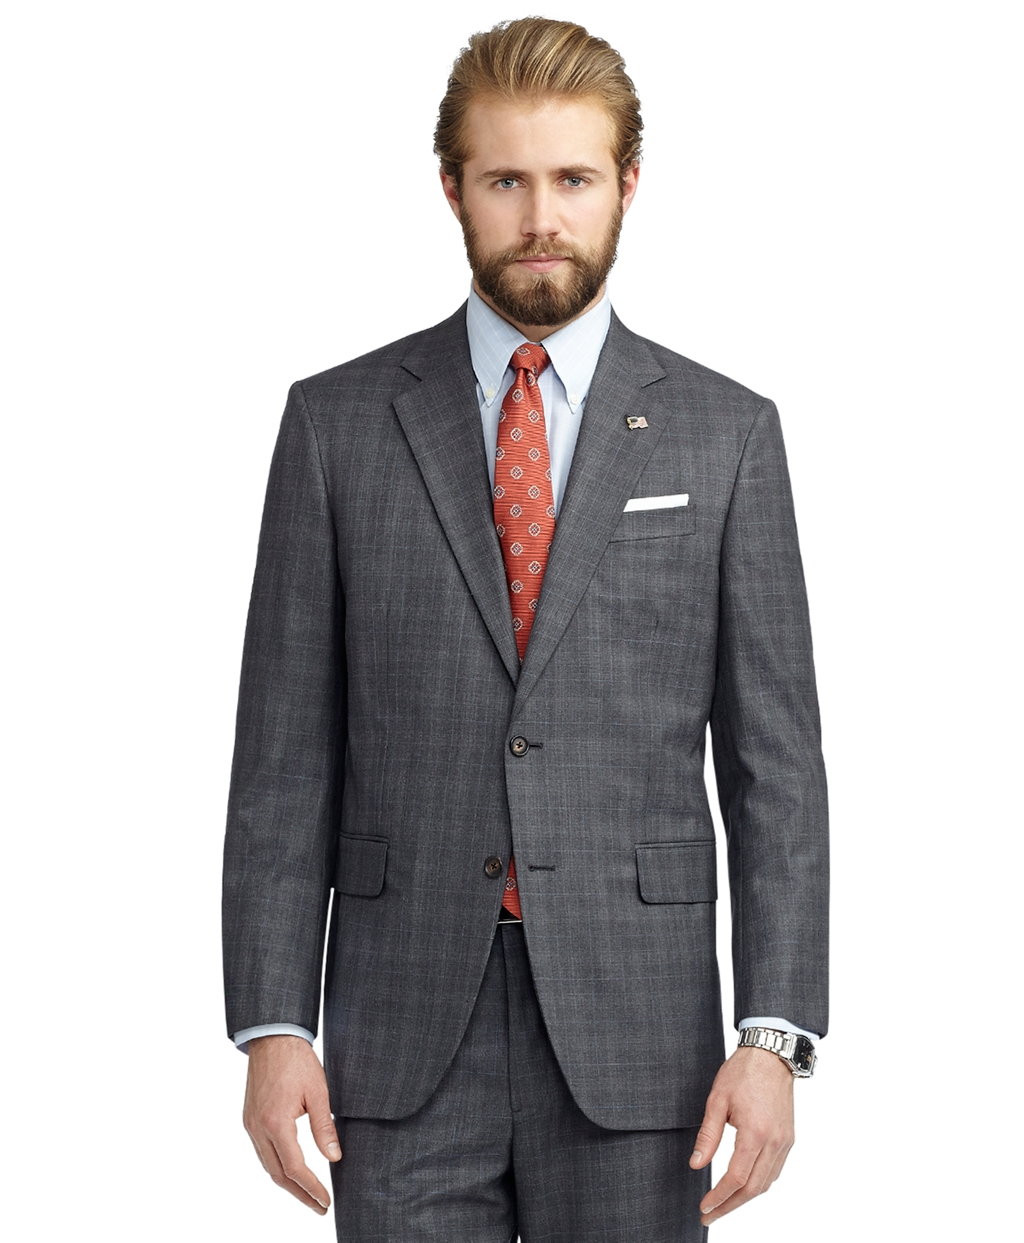 Brooks Brothers Suits - Reviews you can count on.